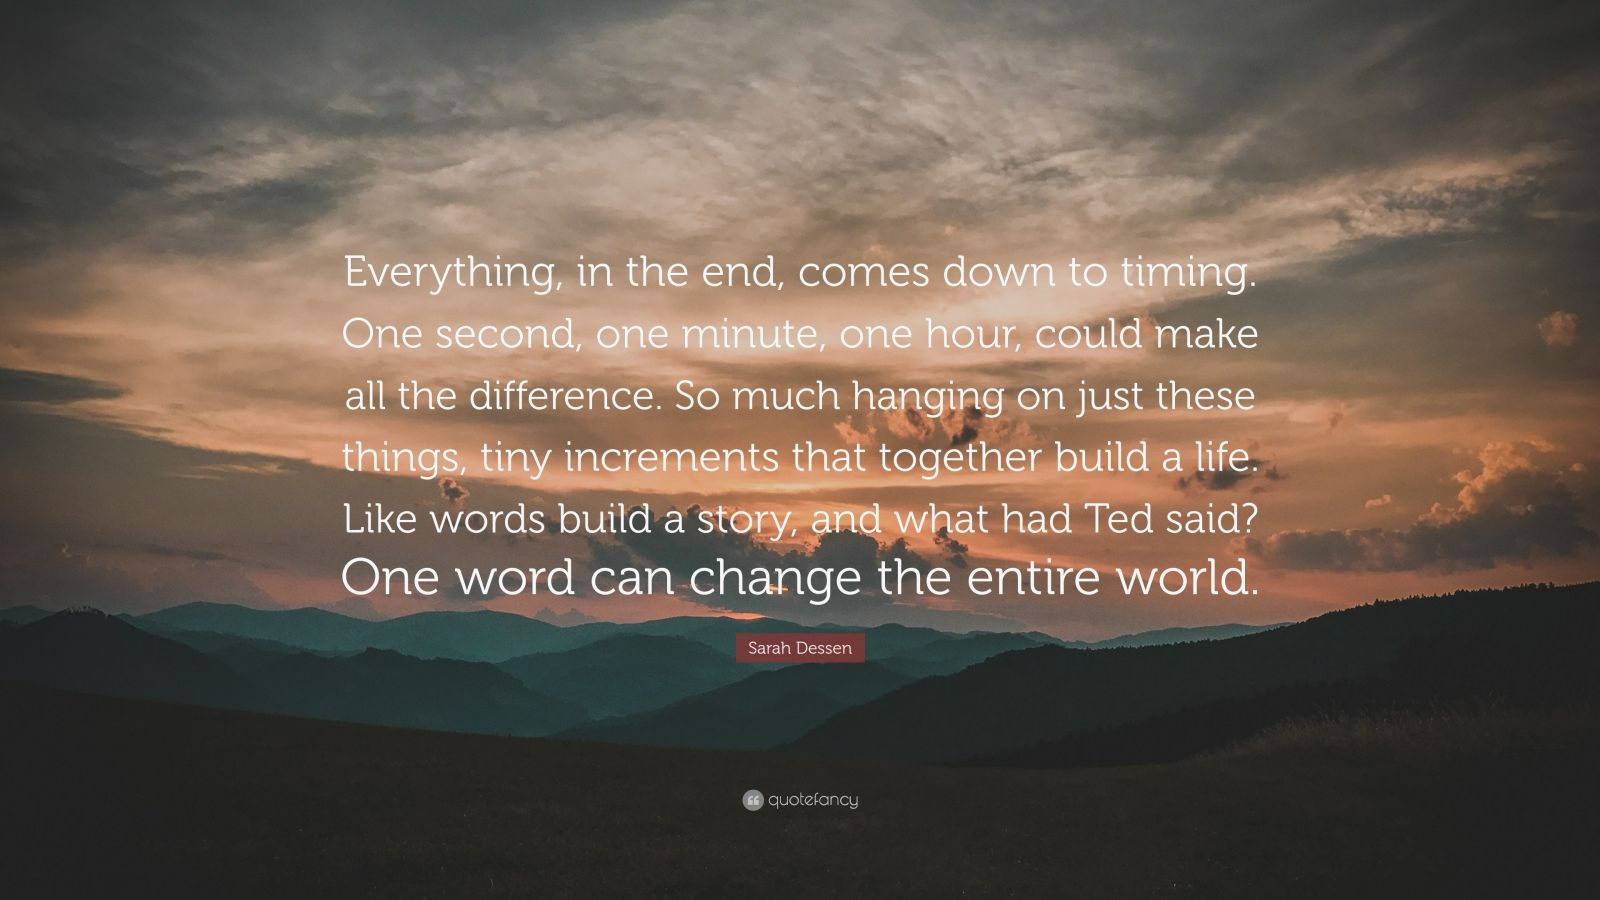 "Sarah Dessen Quote: ""Everything, in the end, comes down to timing. One second, one minute, one hour, could make all the difference. So much hanging on just these things, tiny increments that together build a life. Like words build a story, and what had Ted said? One word can change the entire world."""